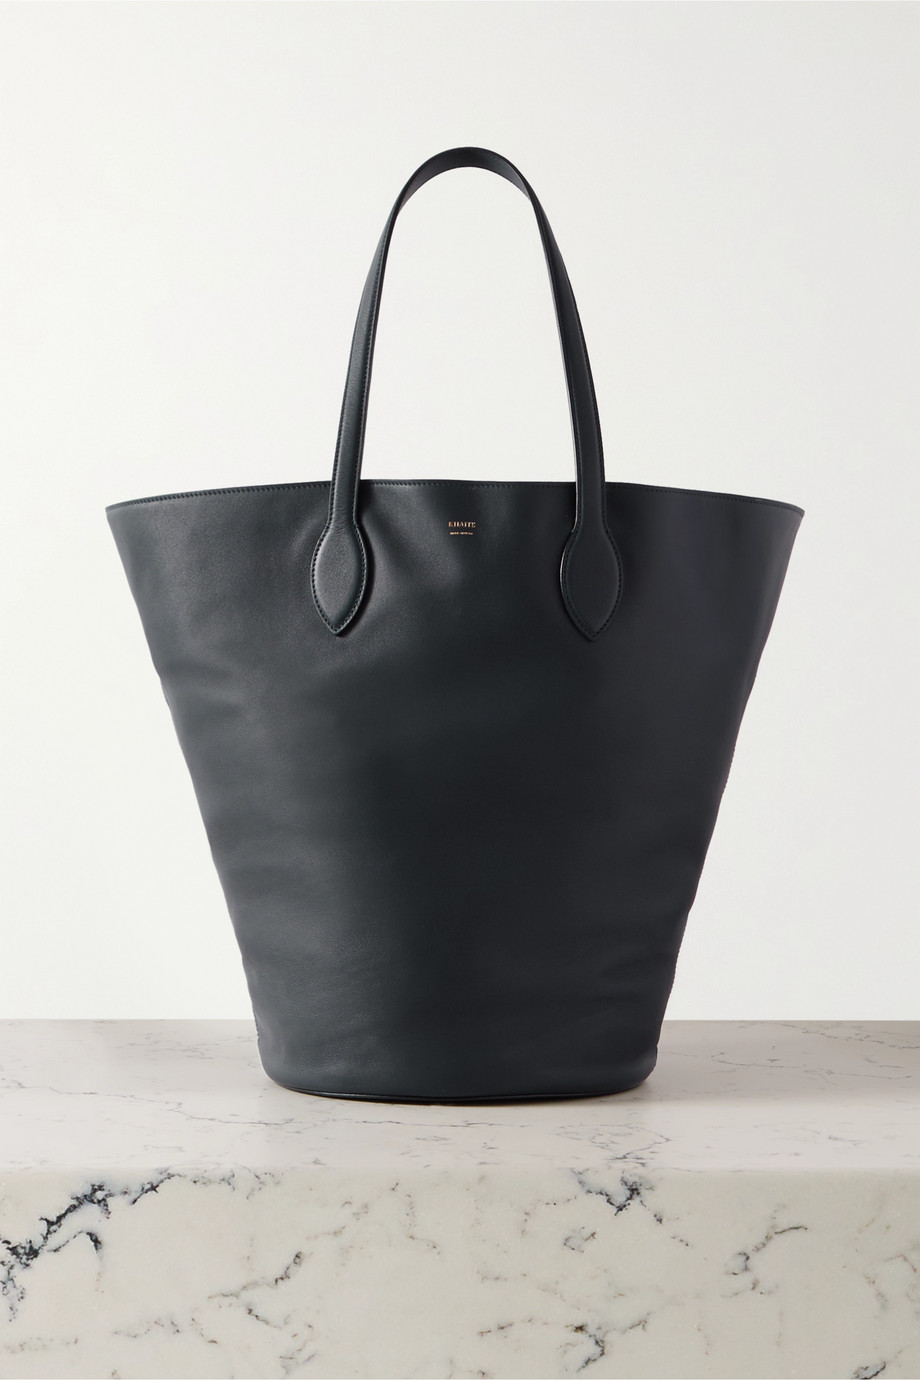 Khaite Circle medium leather tote